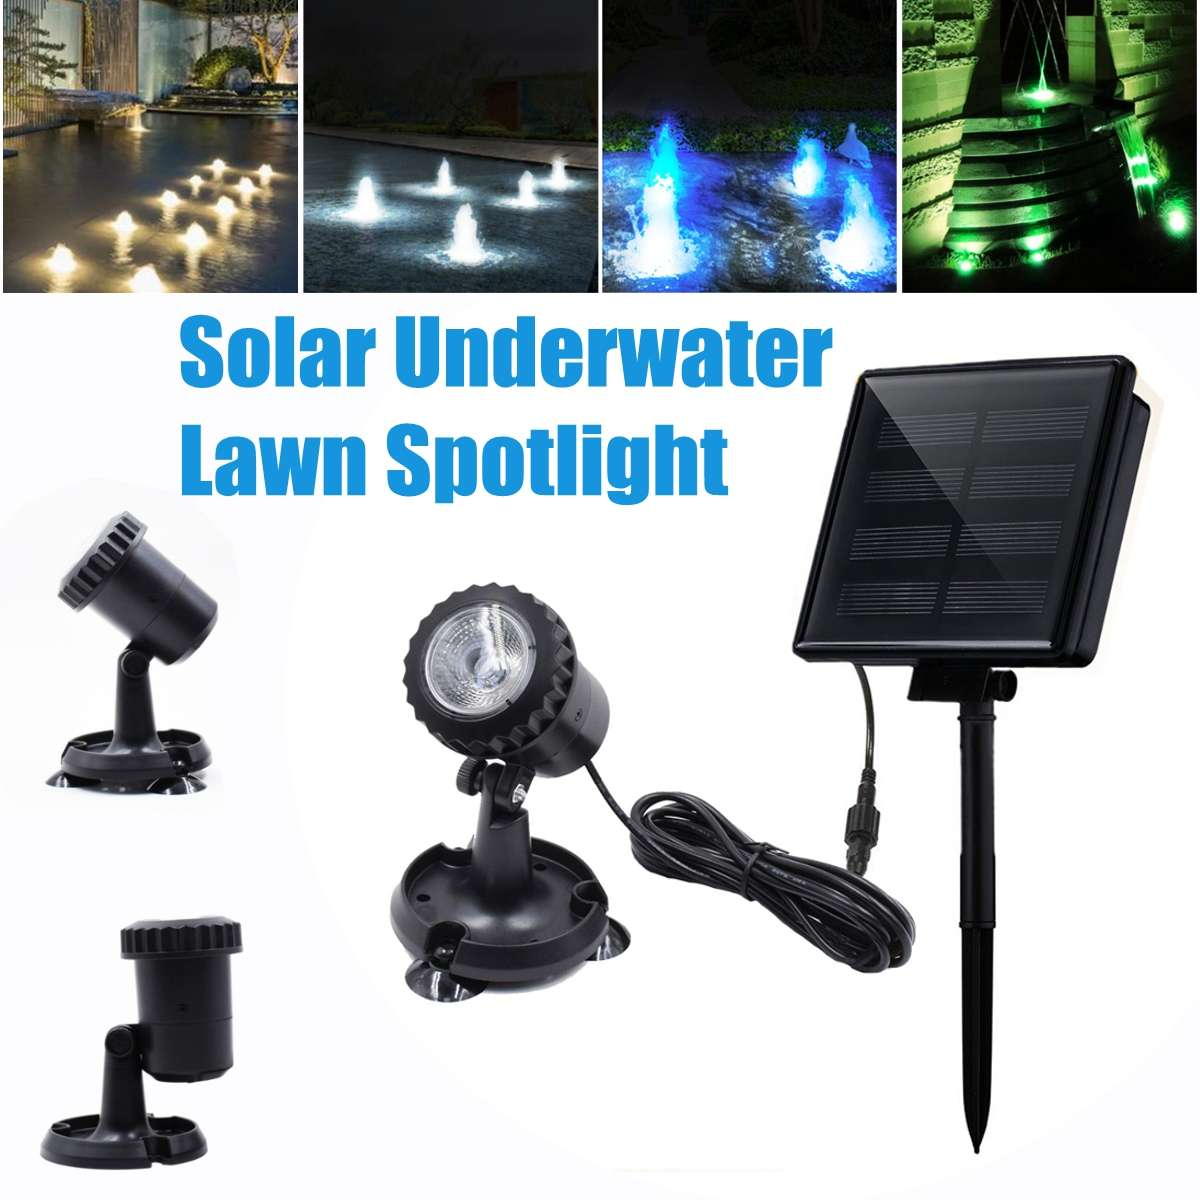 Solar Light Waterproof IP68 Underwater Fountain Pond Lights LED Spotlights For Outdoor Amphibious Lawn Pool Garden